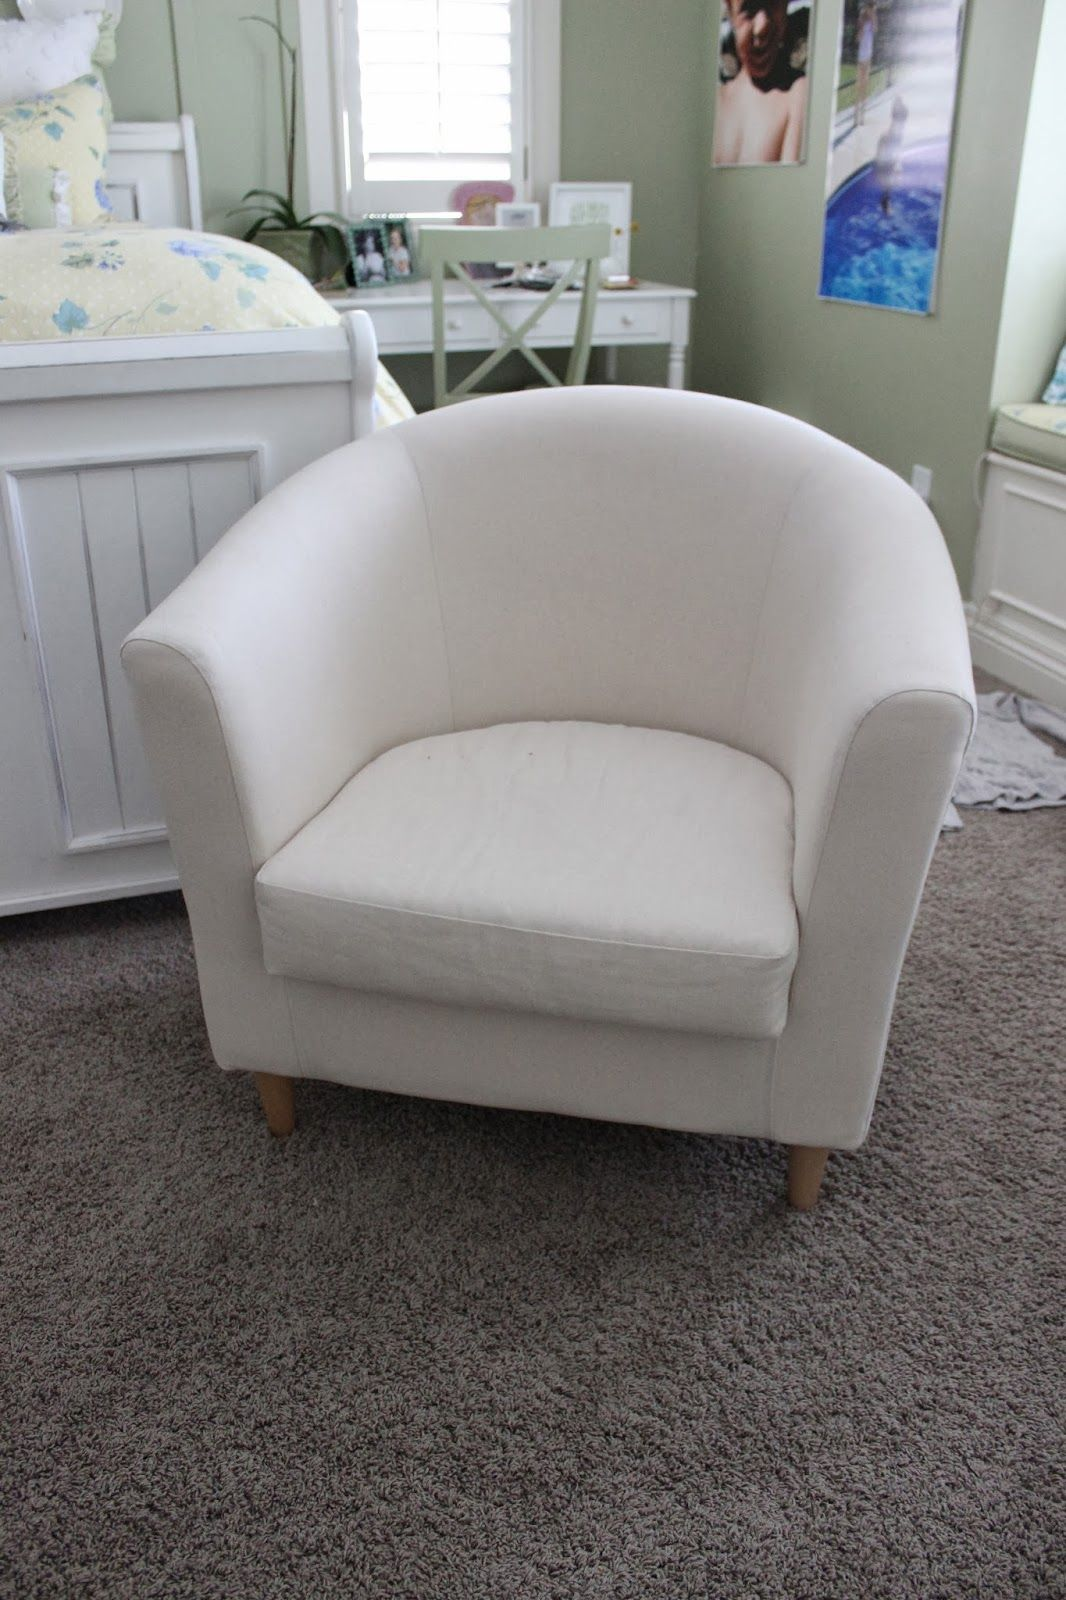 Drawing Of Simple Barrel Chair Slipcovers White Bedroom Armchair Small For